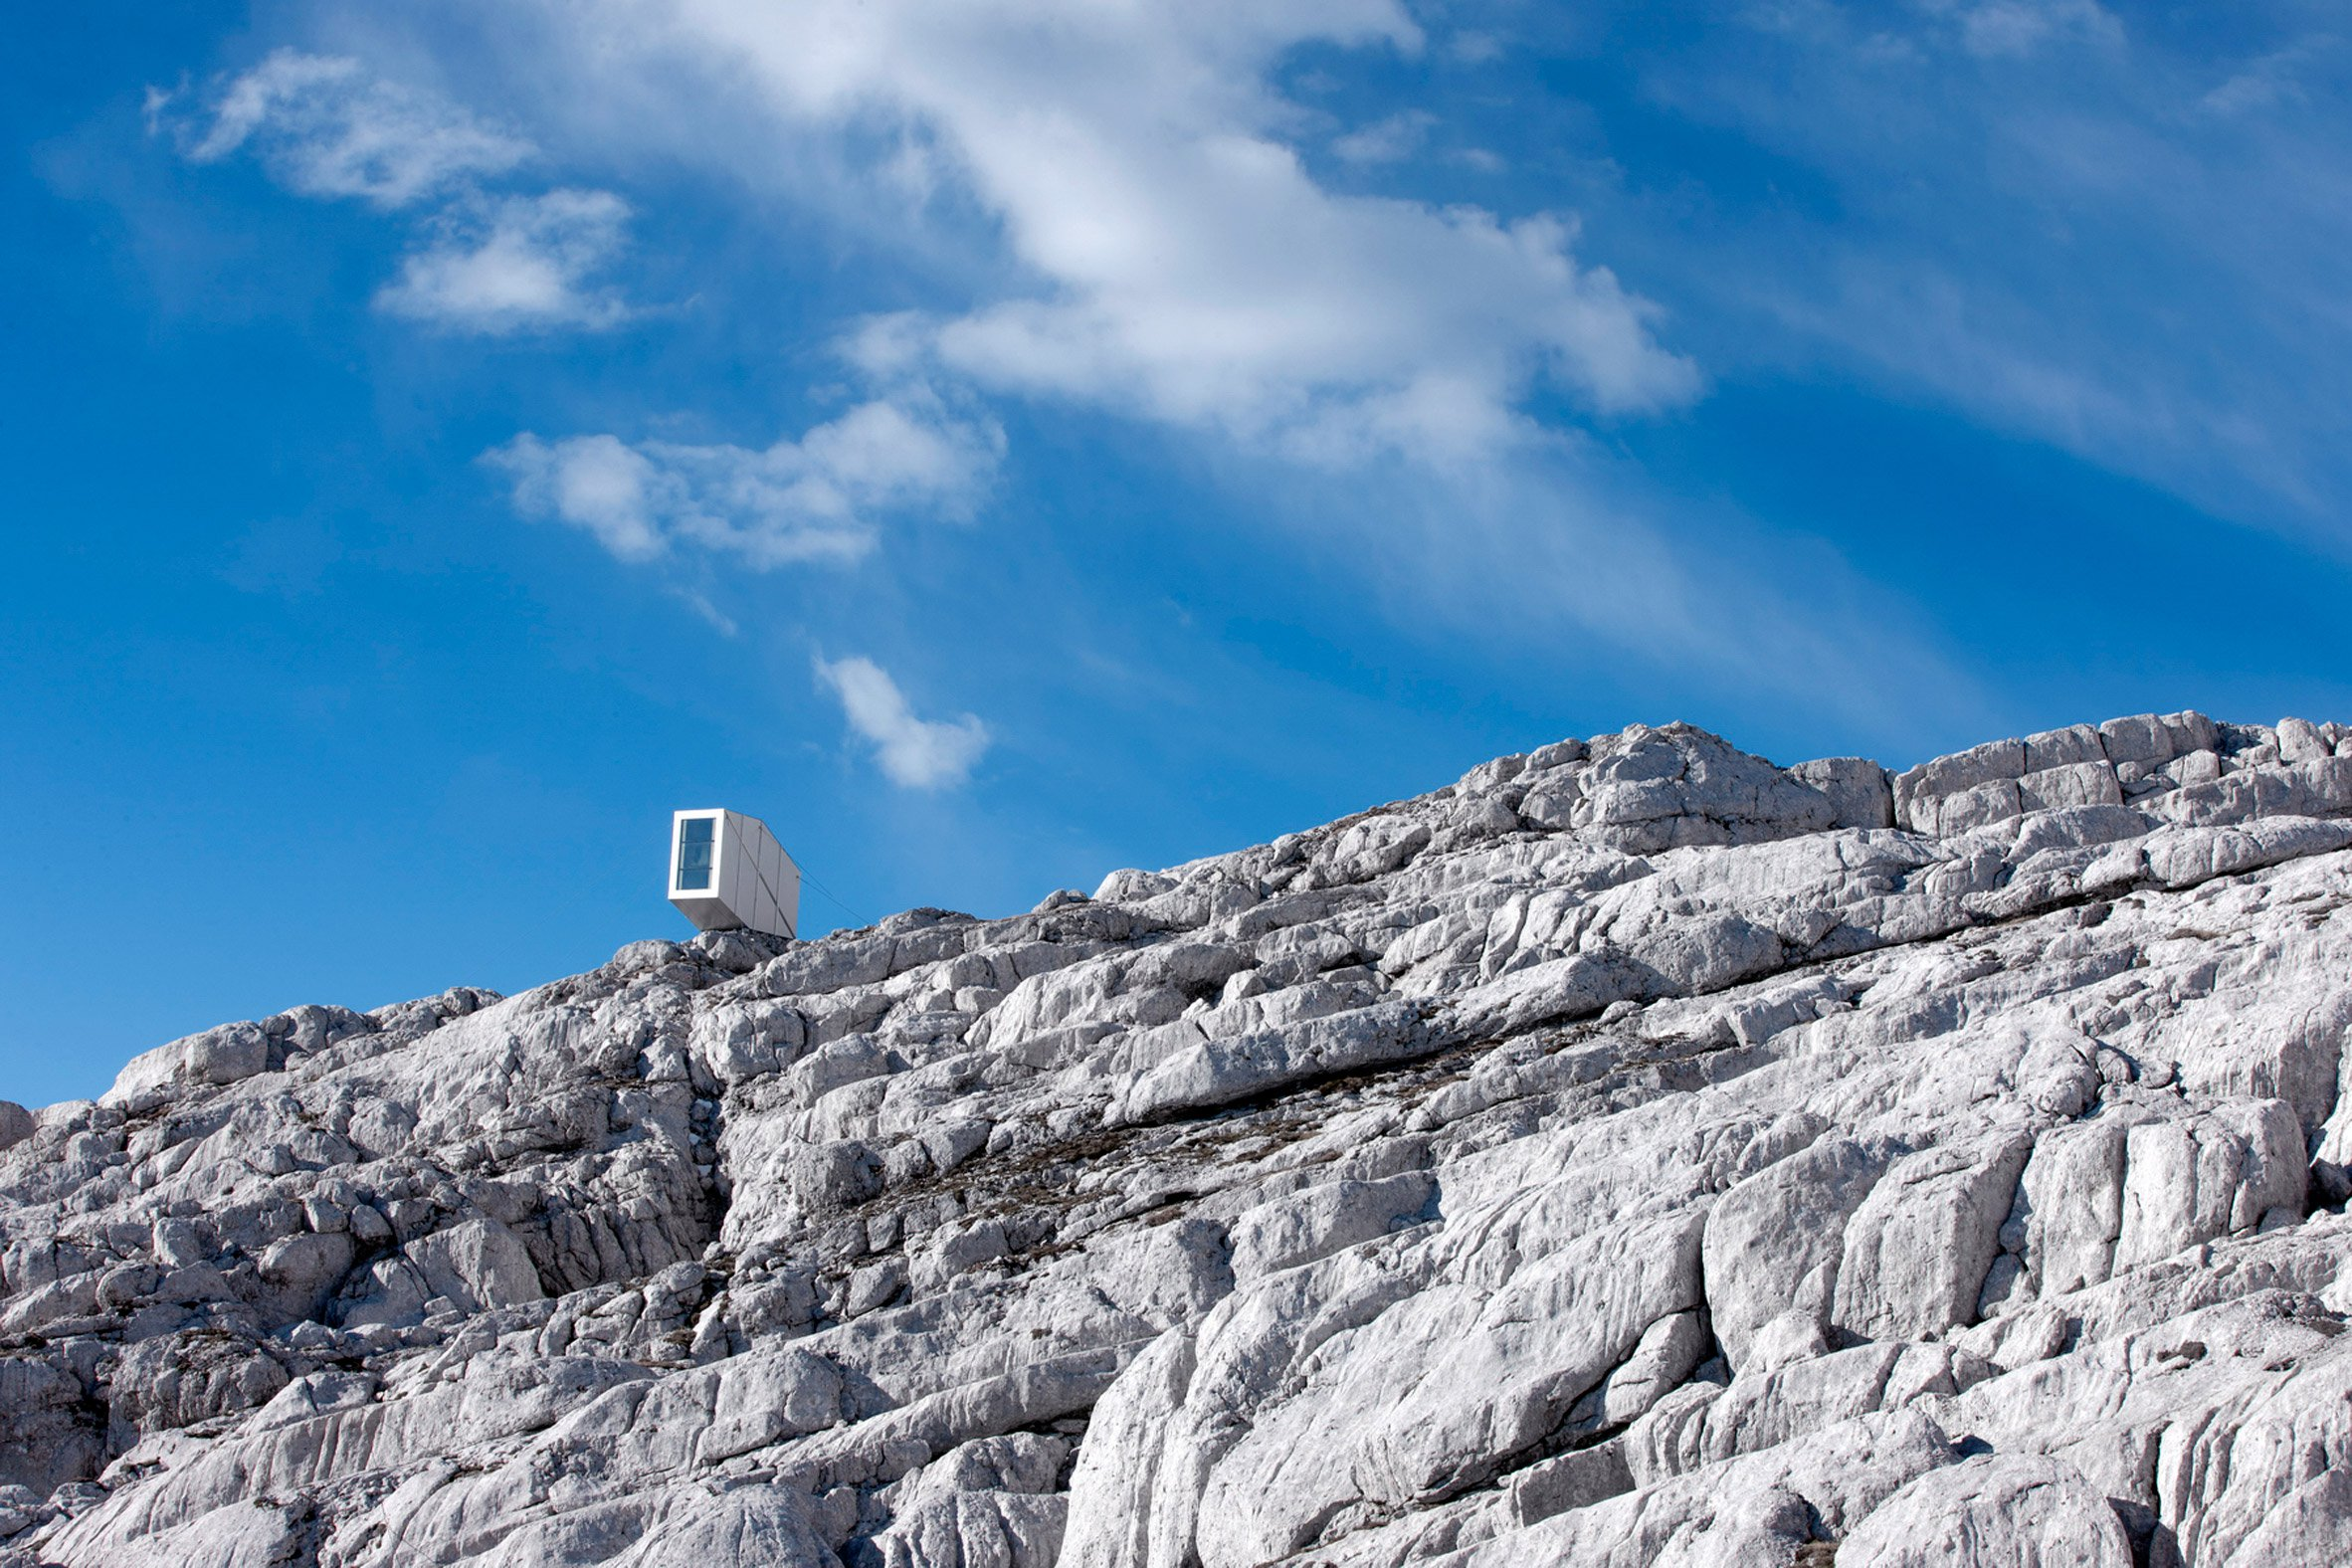 Precarious Alpine shelter by OFIS offers shelter to Slovenian climbers